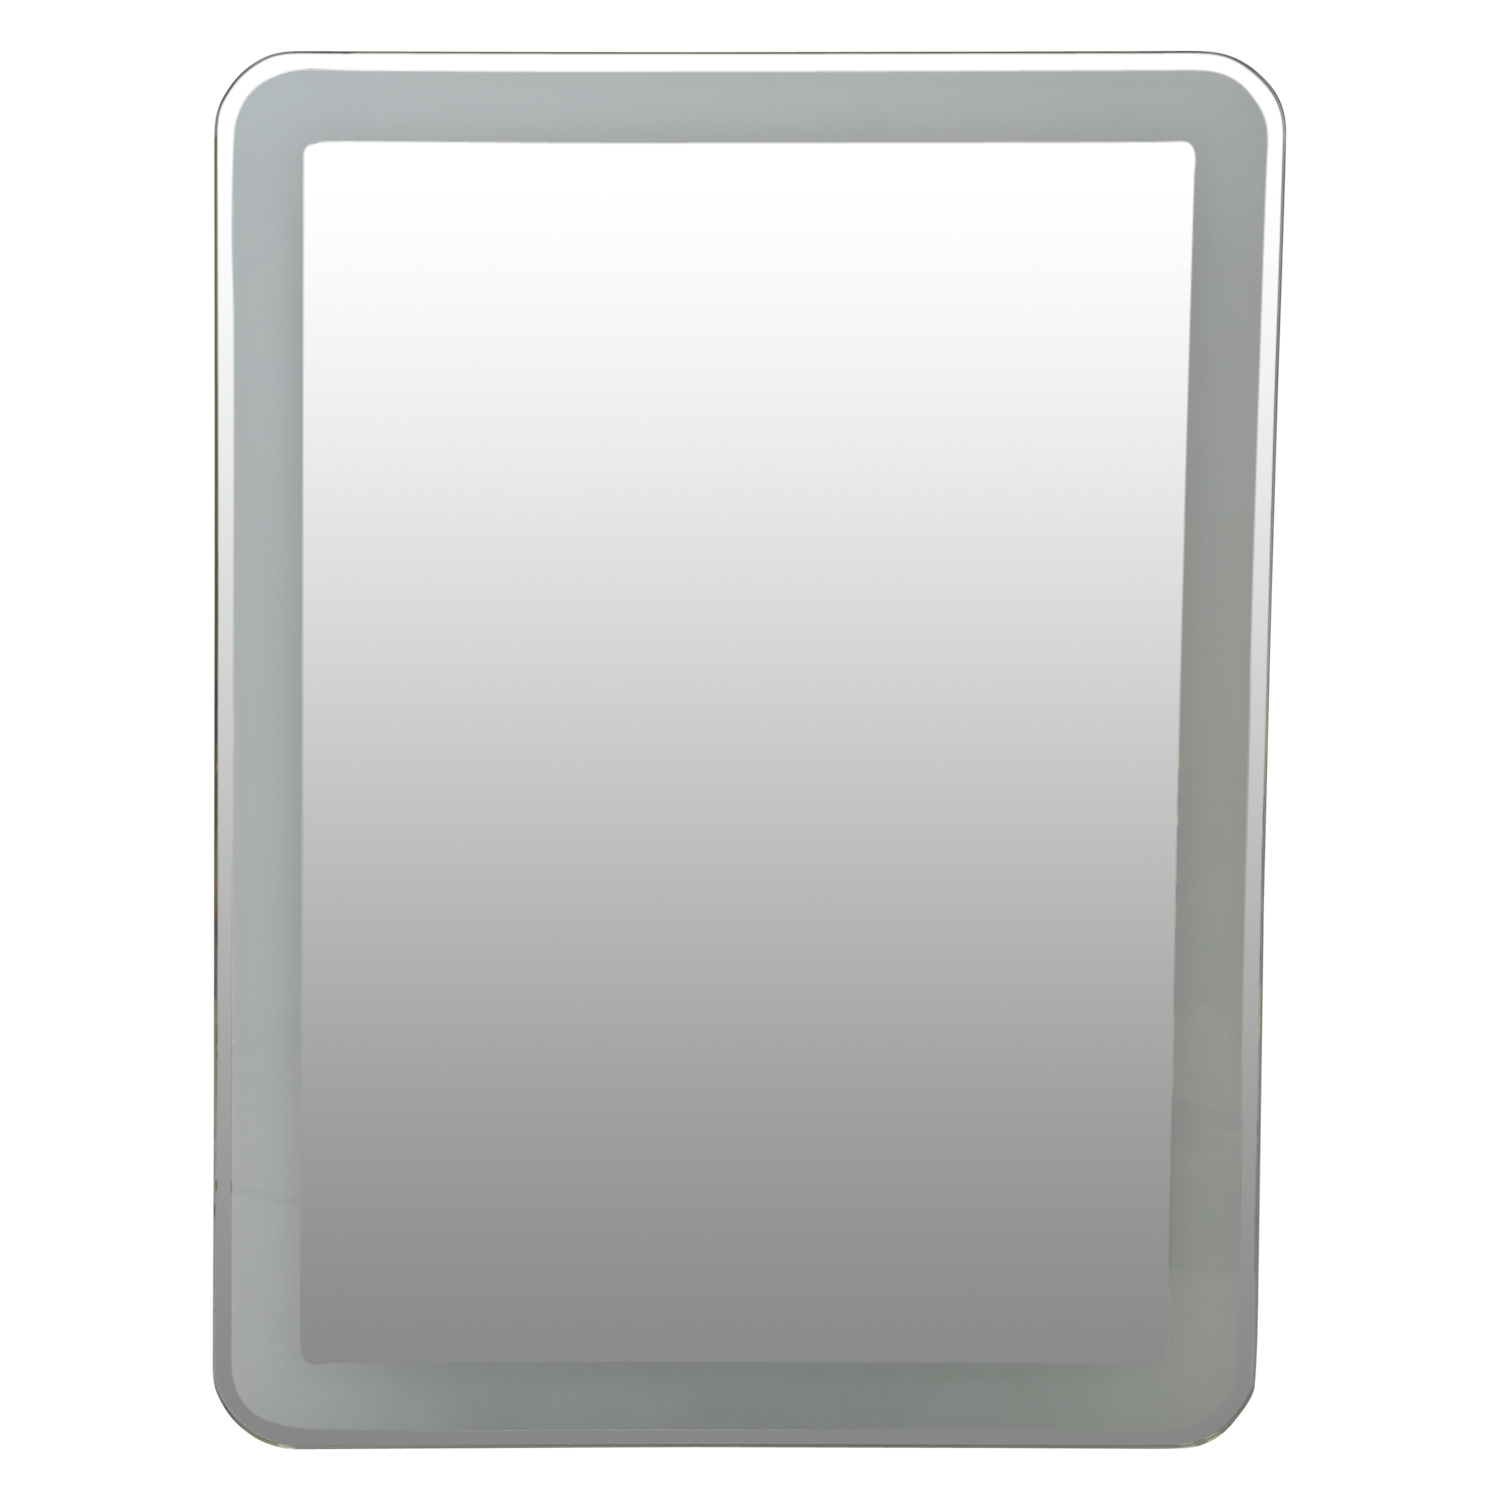 Image of Casa LED Mirror With Touch Switch, Silver